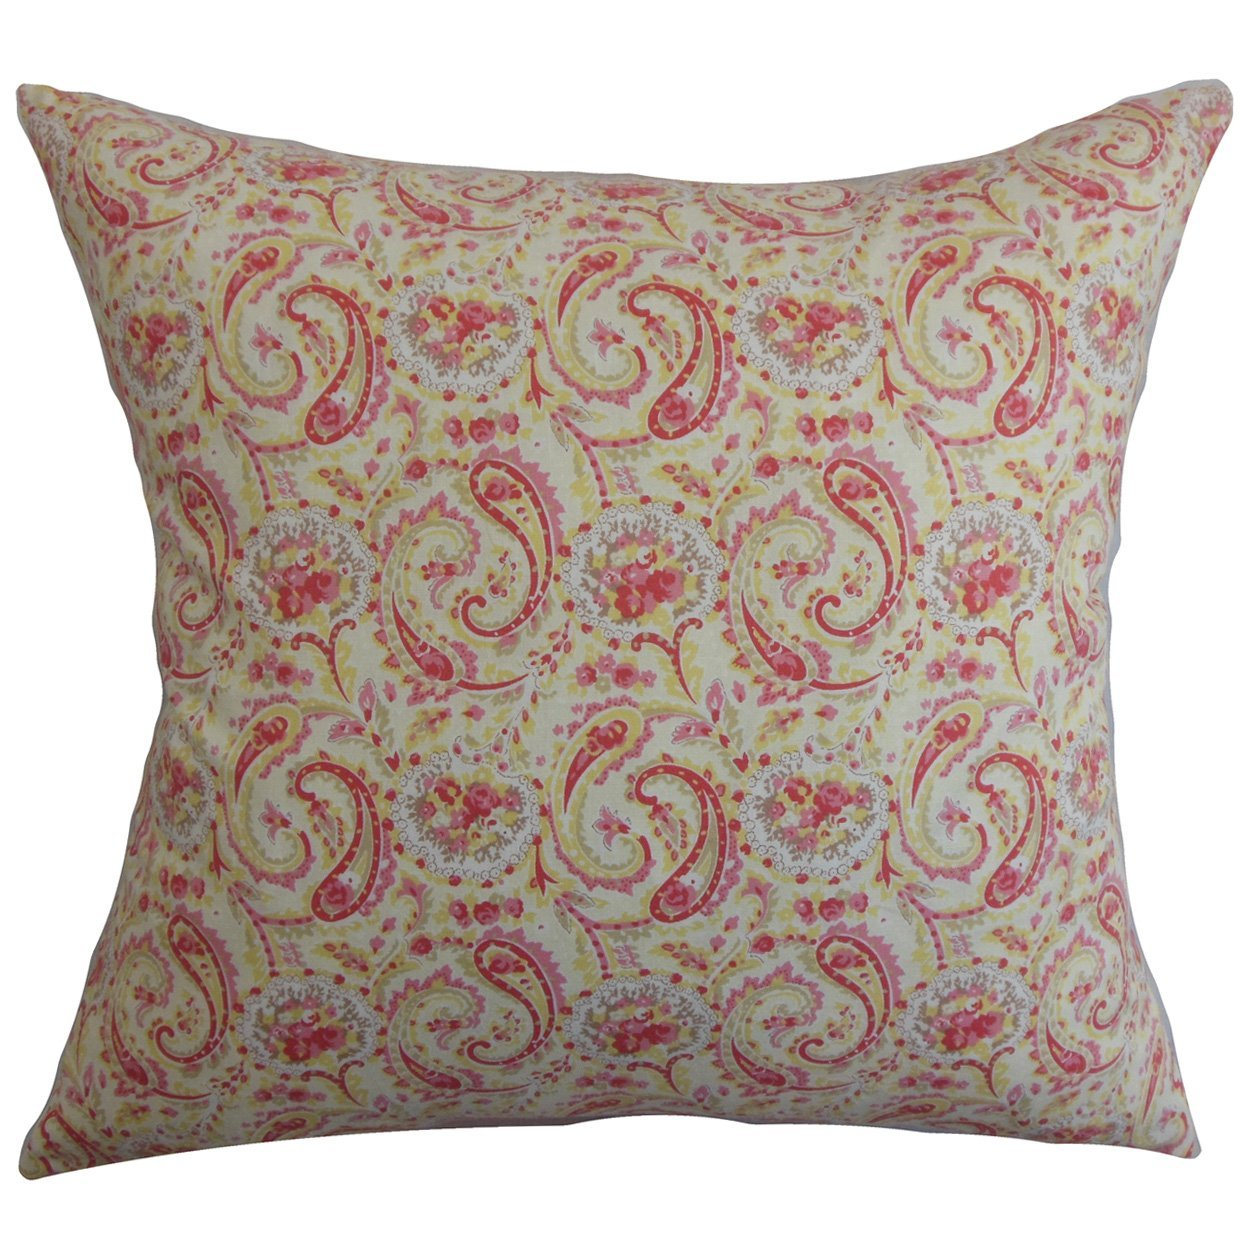 Red Cotton Floral Contemporary Throw Pillow Cover